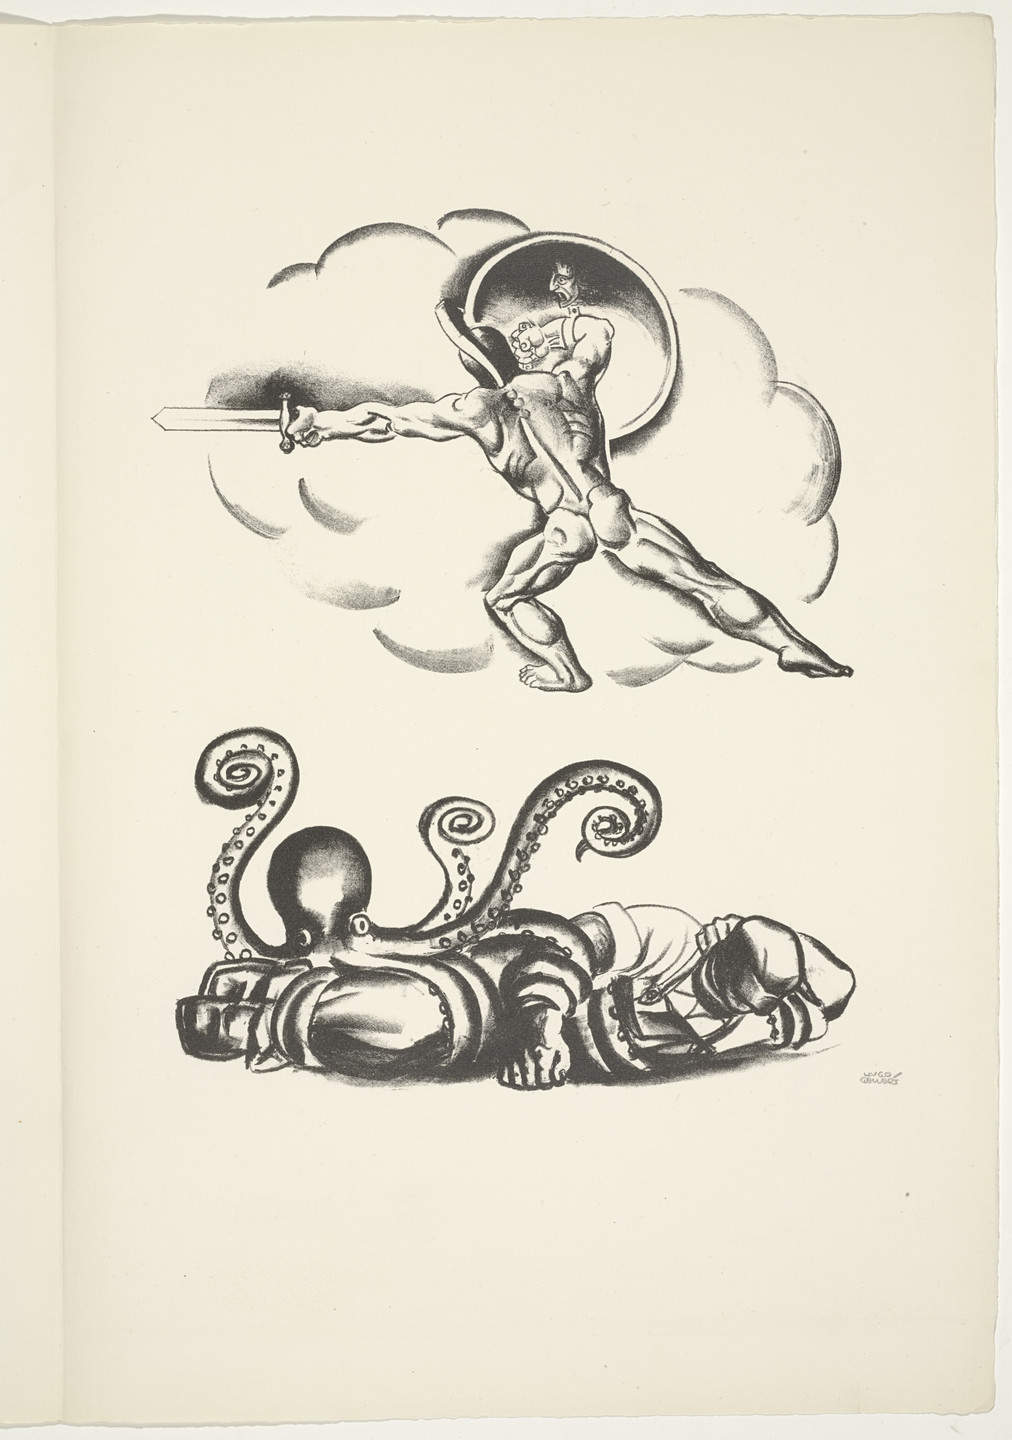 Hugo Gellert. Plate (folio 8) from 'Capital' in Pictures. 1933